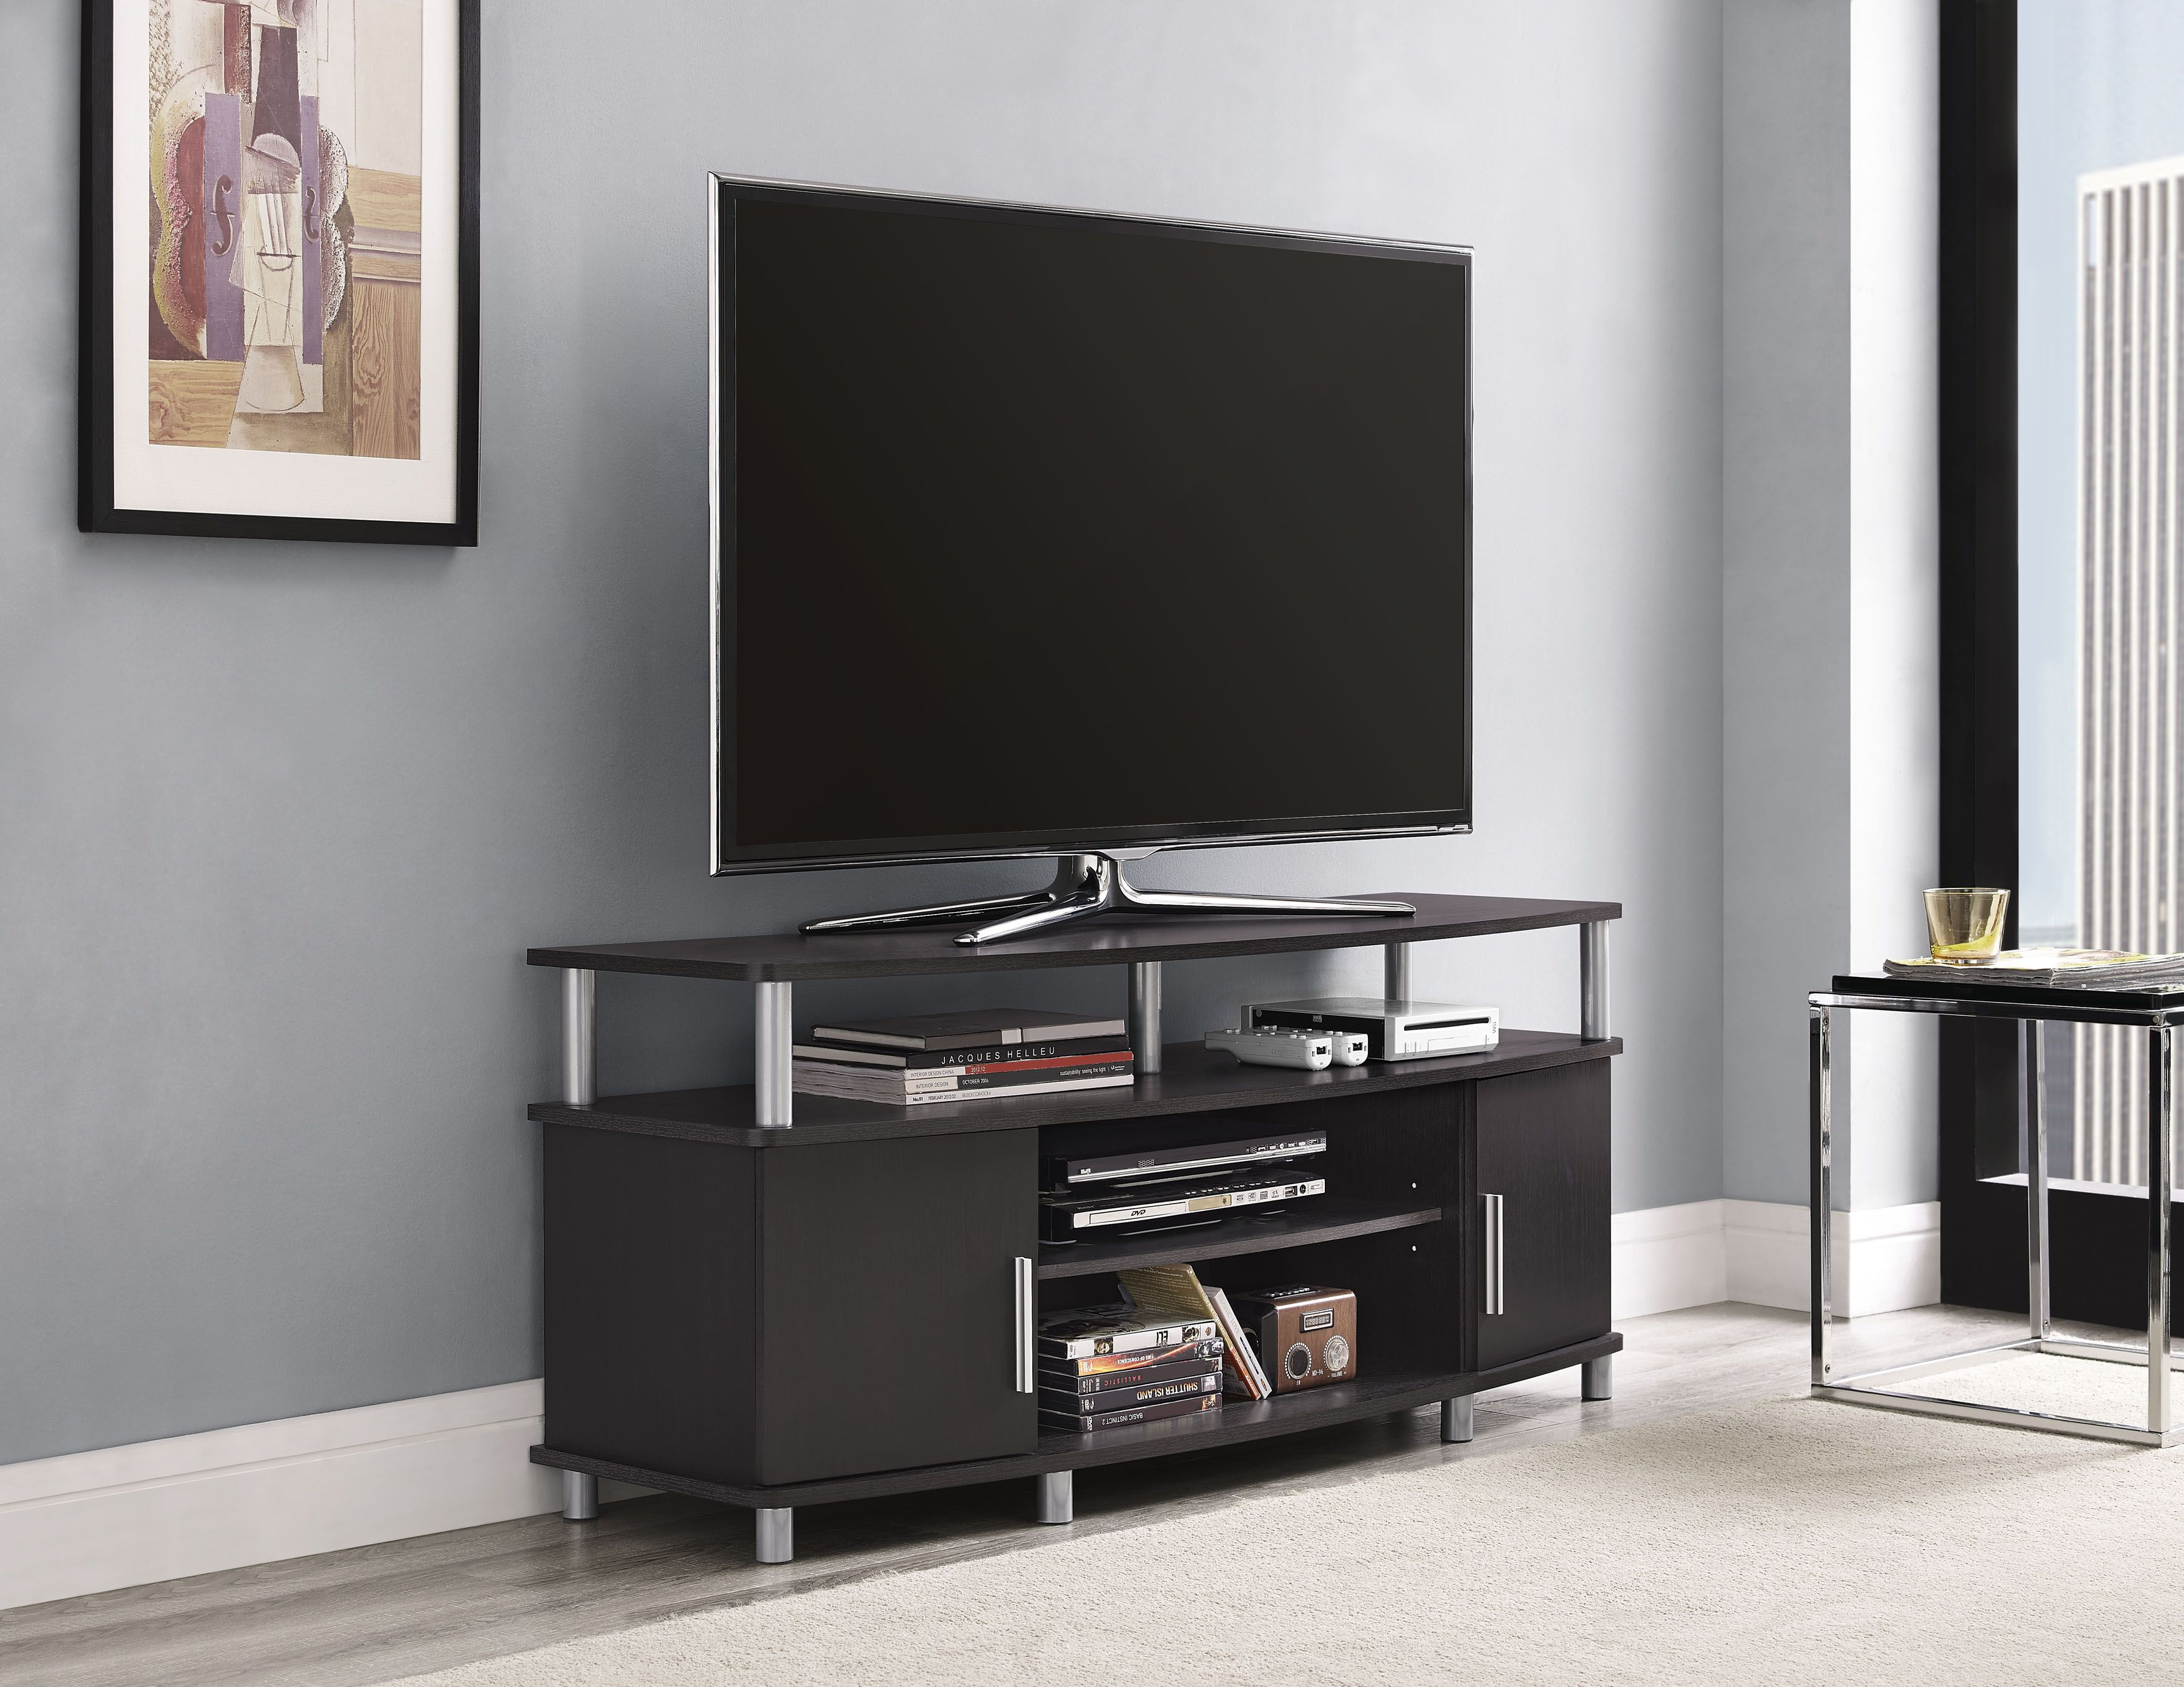 Dorel Home Furnishings Carson Tv Stand Multiple Colors Black Red